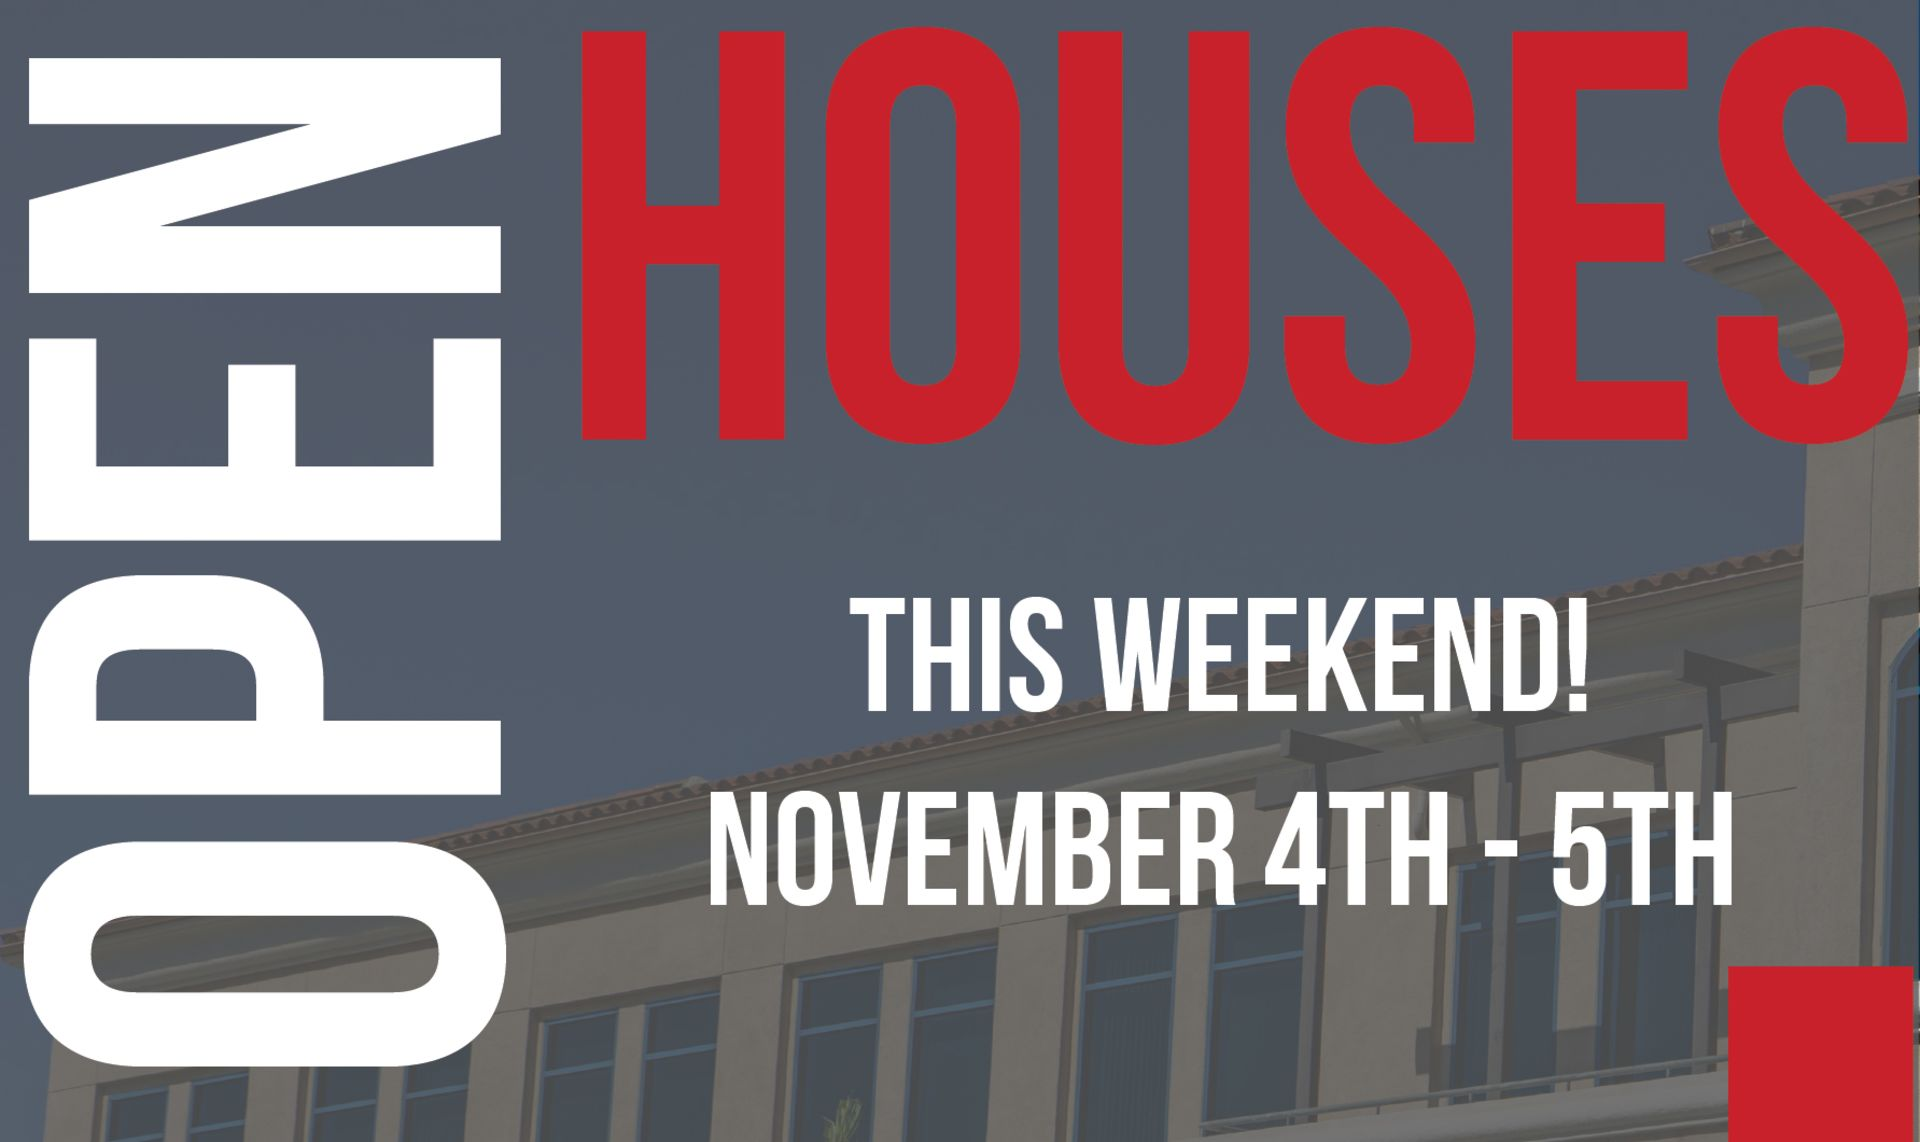 Open Houses This Weekend Nov. 4th-5th